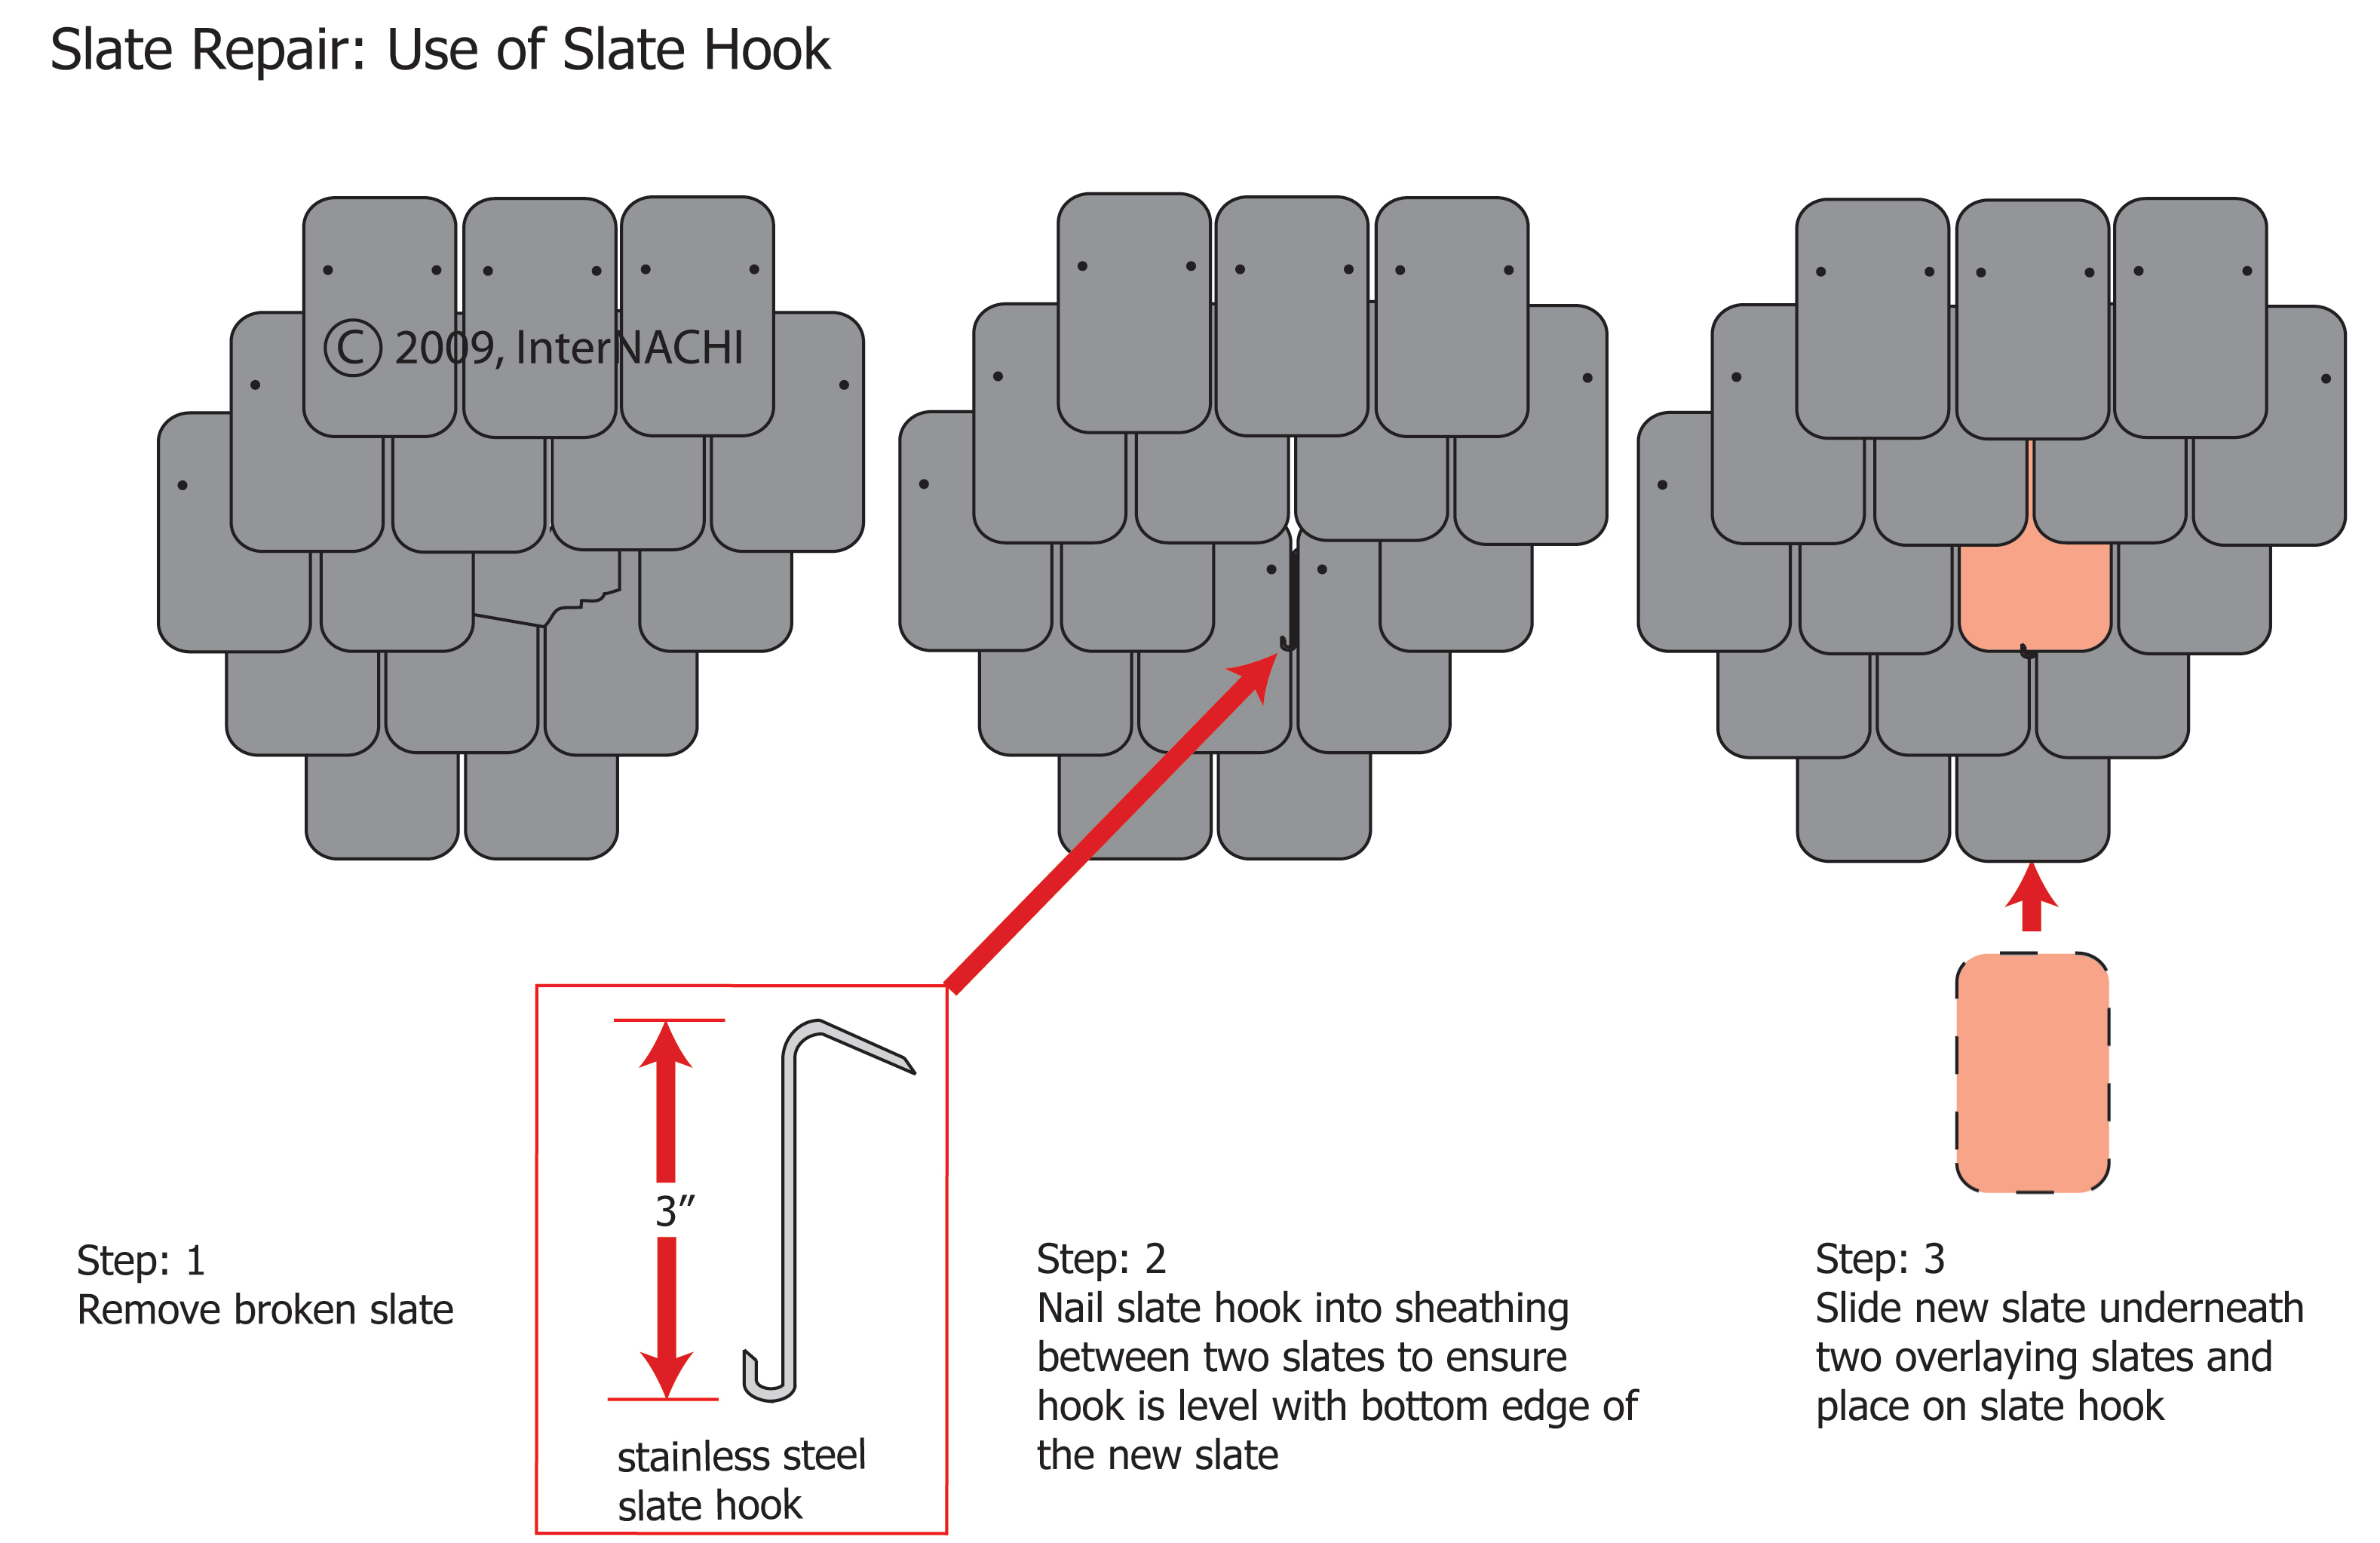 Slate roof repair with a hook.